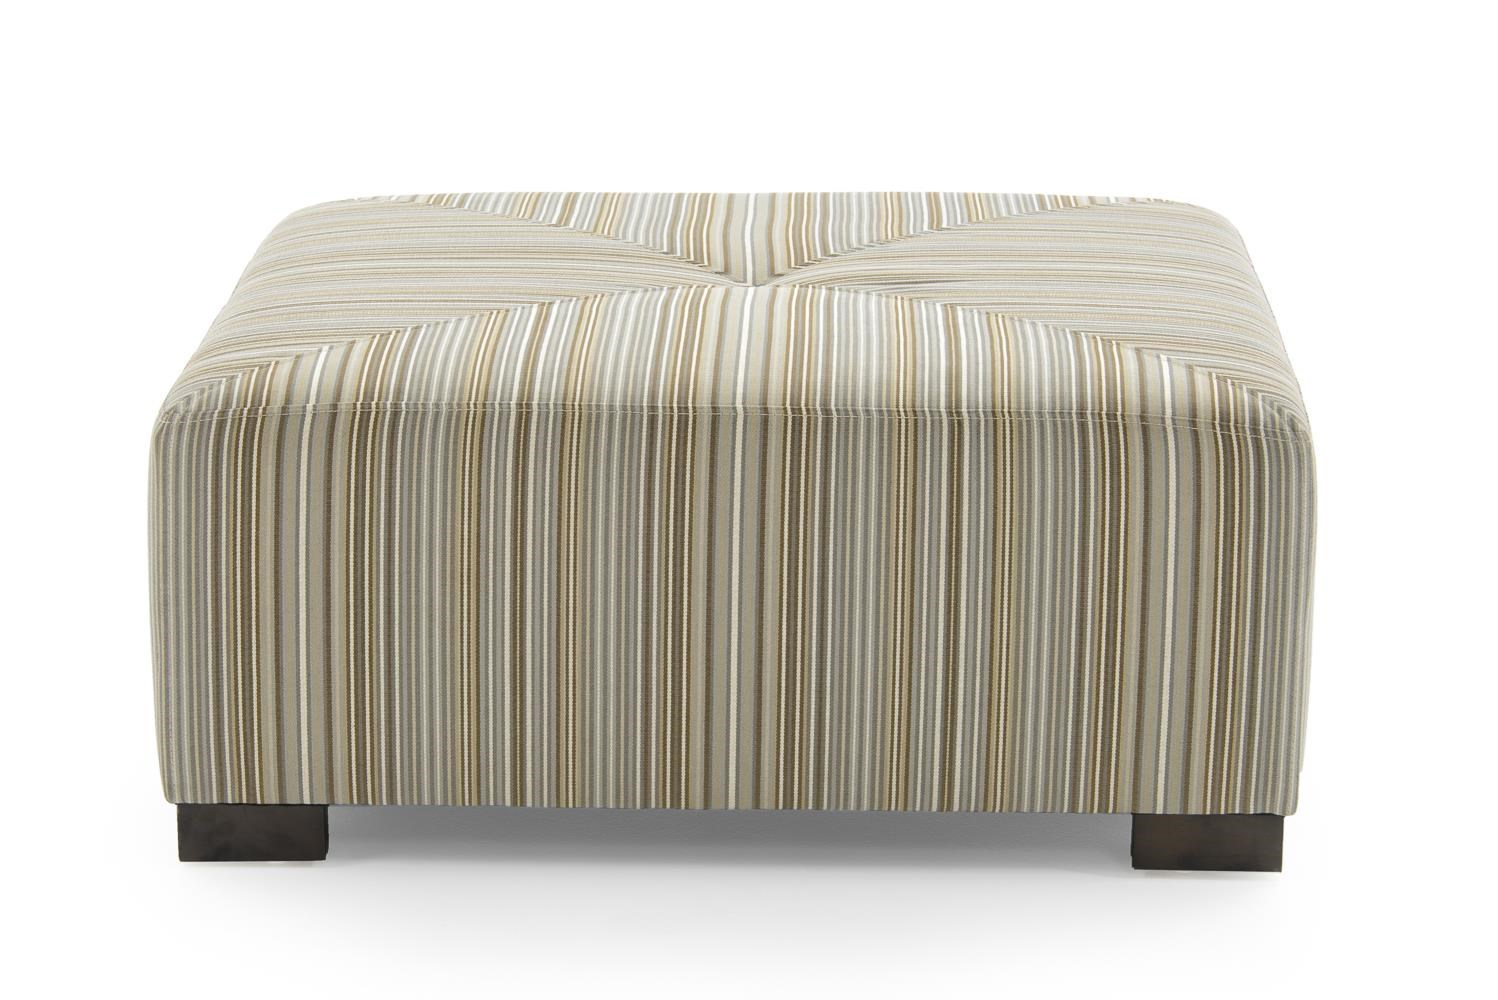 Max Home 52XU-CBS Square Cocktail Ottoman - Item Number: 52XU-CBS TULLY